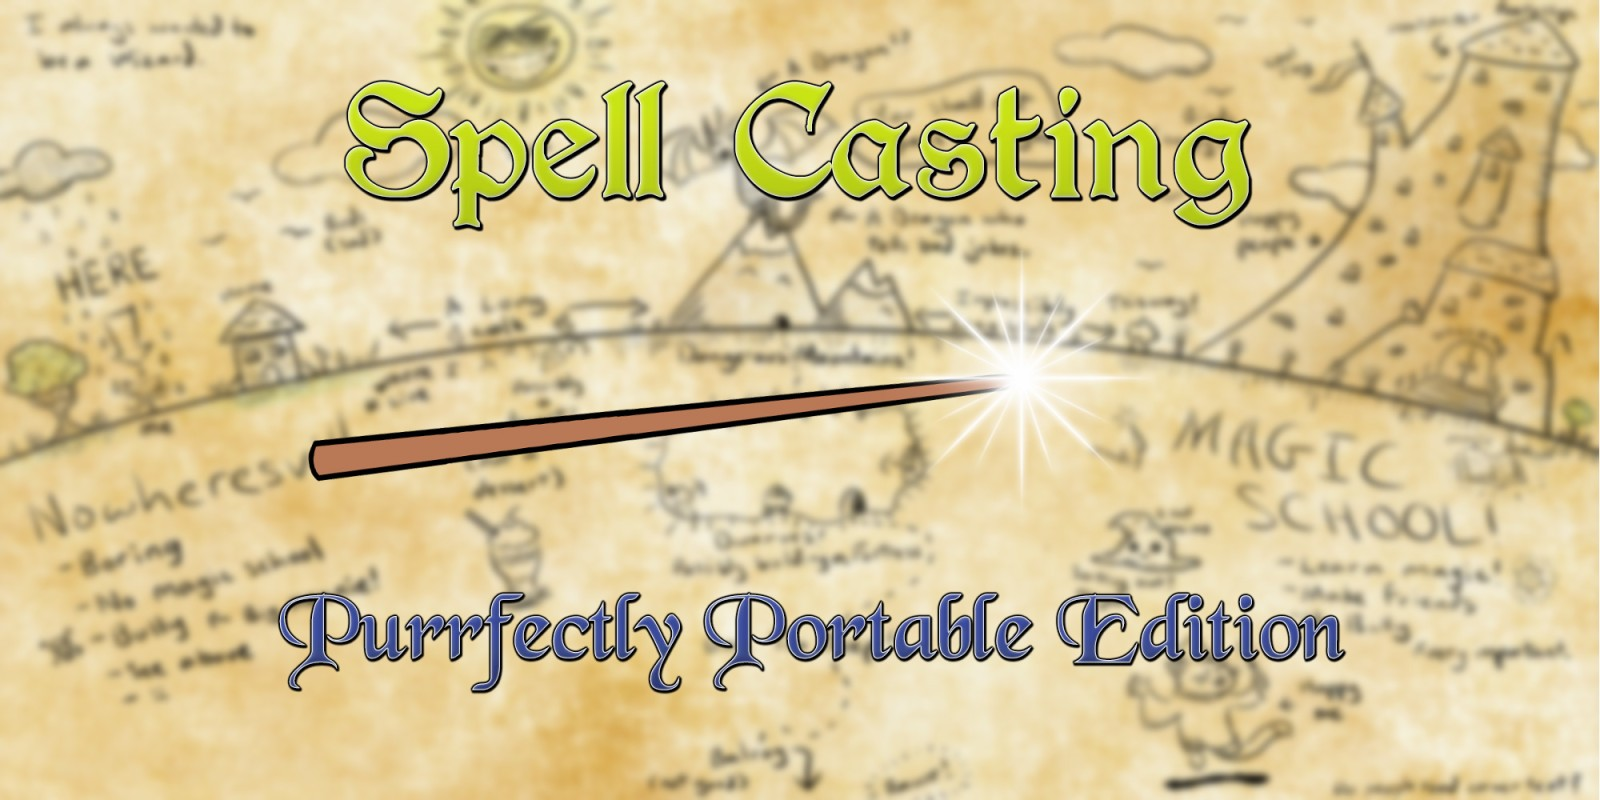 spell casting purrfectly portable